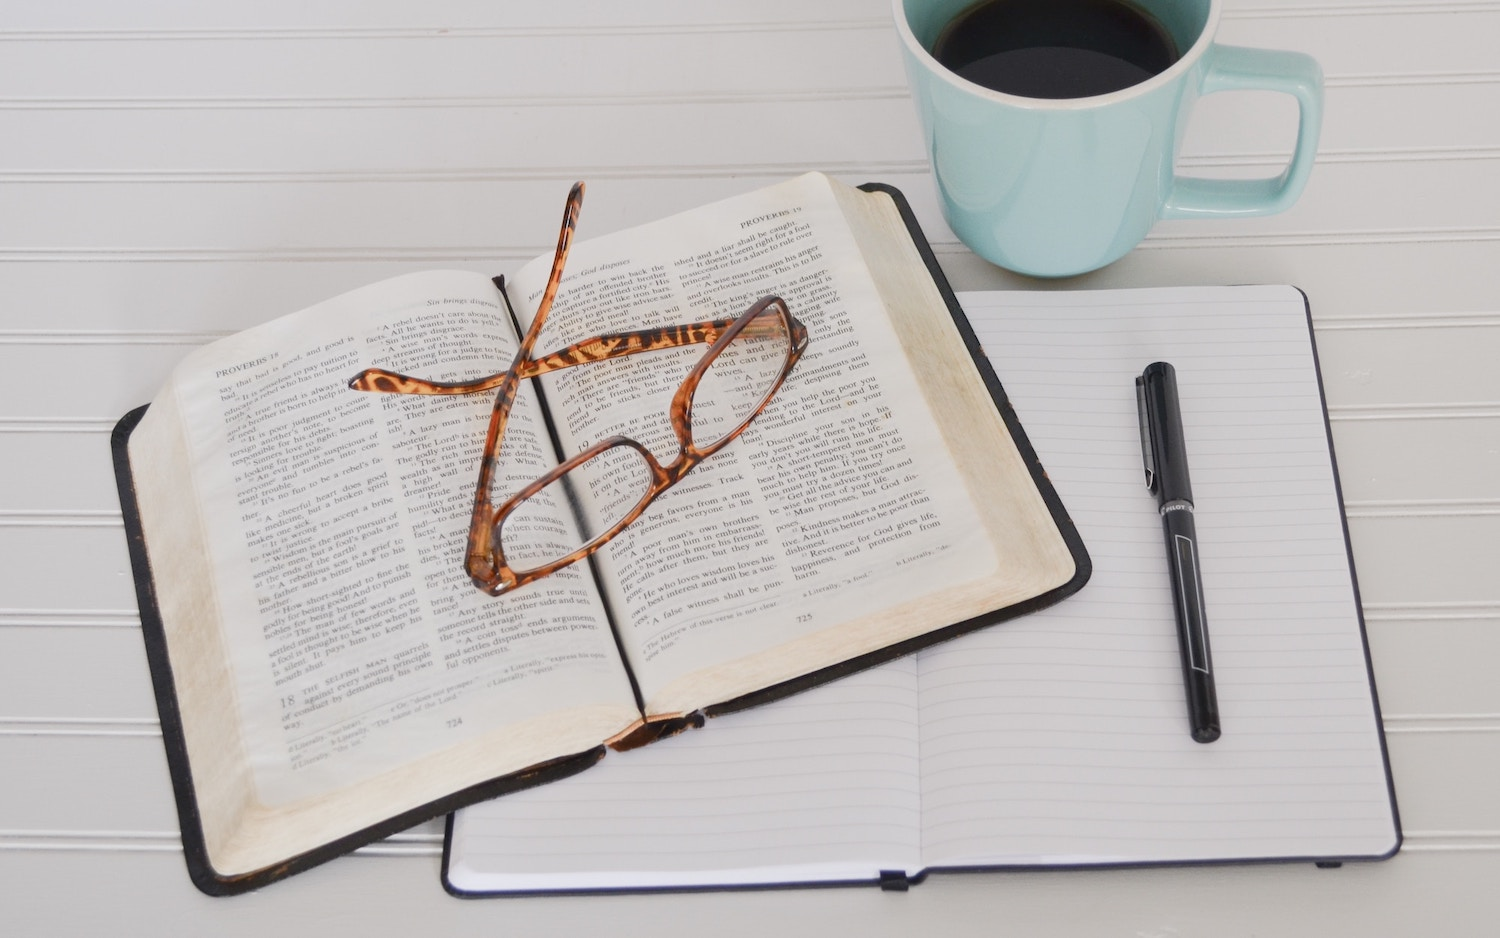 table-layout-bible-reading-glasses-coffee-notebook